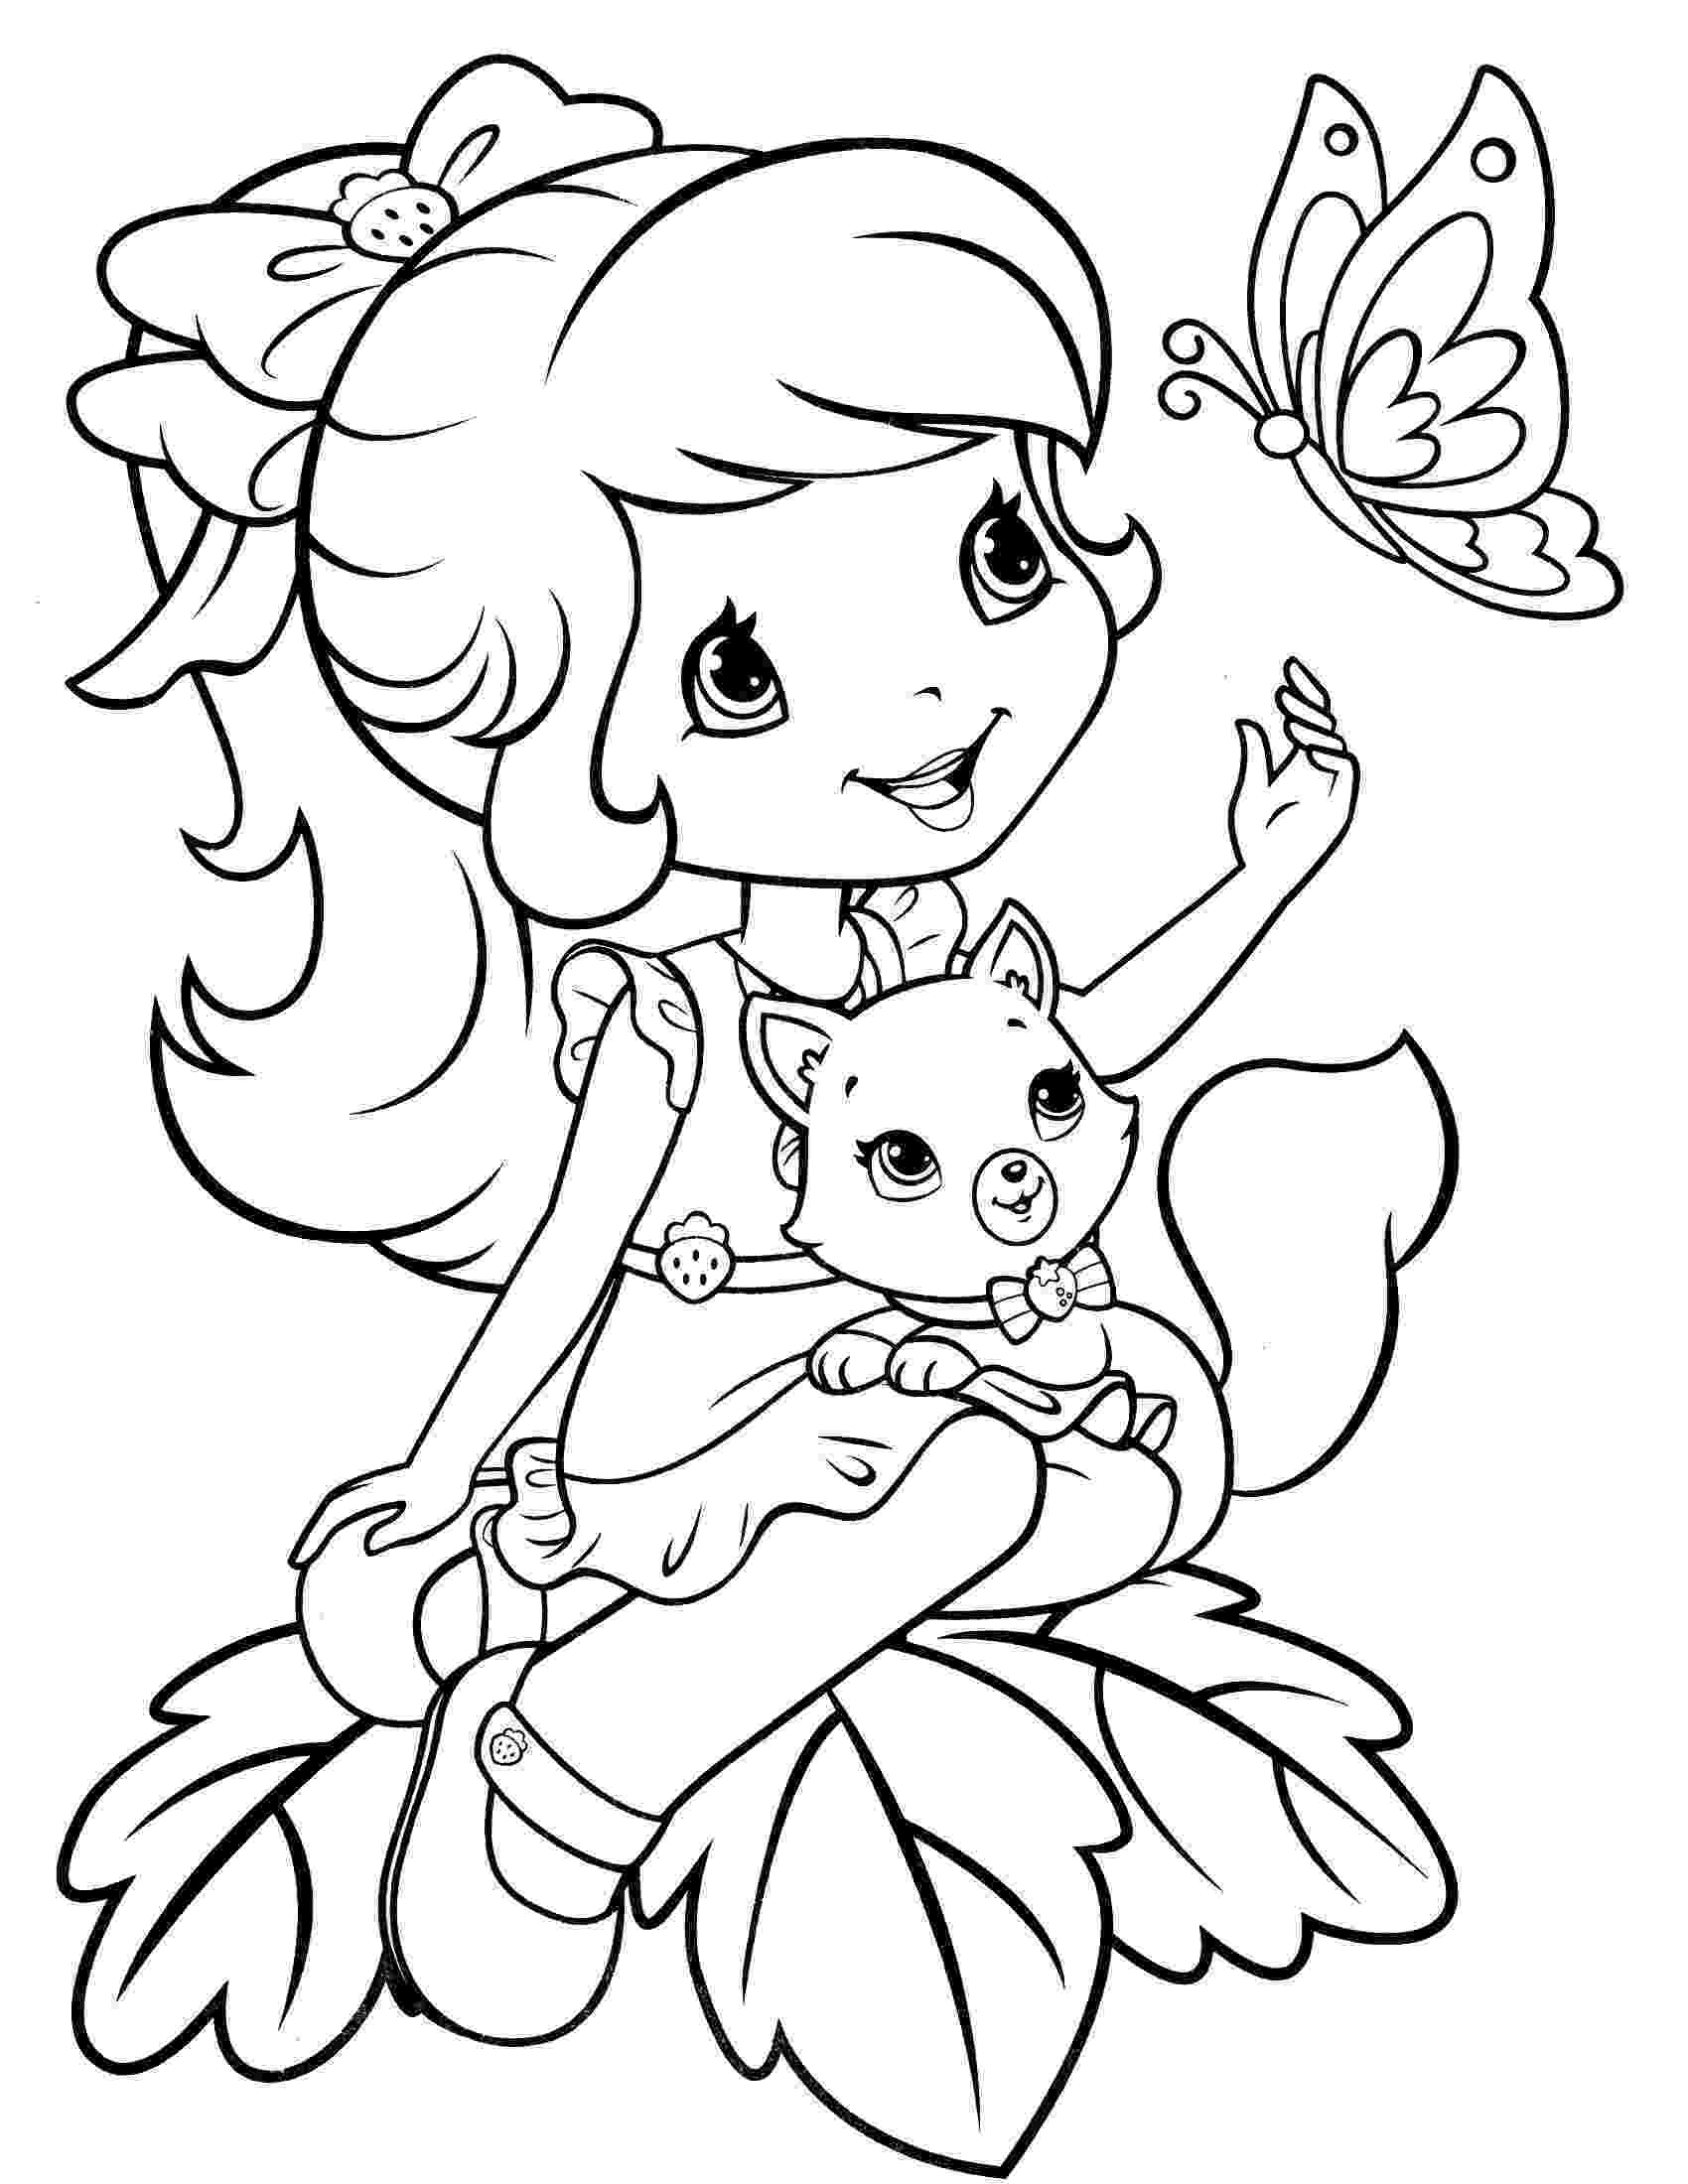 strawberry shortcake colouring pictures strawberry shortcake coloring pages getcoloringpagescom colouring shortcake strawberry pictures